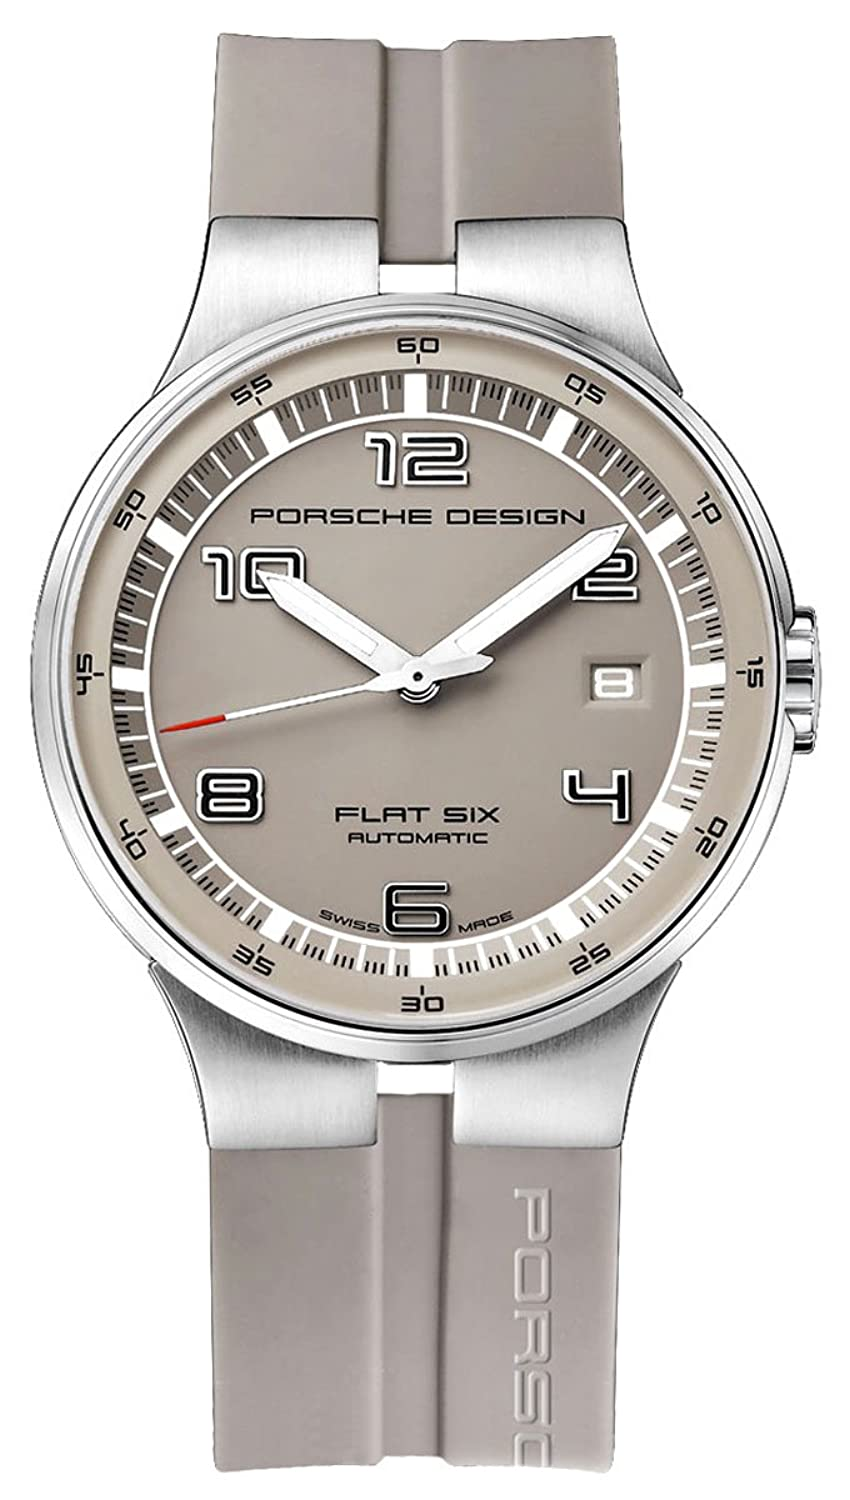 Porsche Design Flat Six Automatic Stainless Steel Mens Grey Watch Calendar 6351.41.54.1263